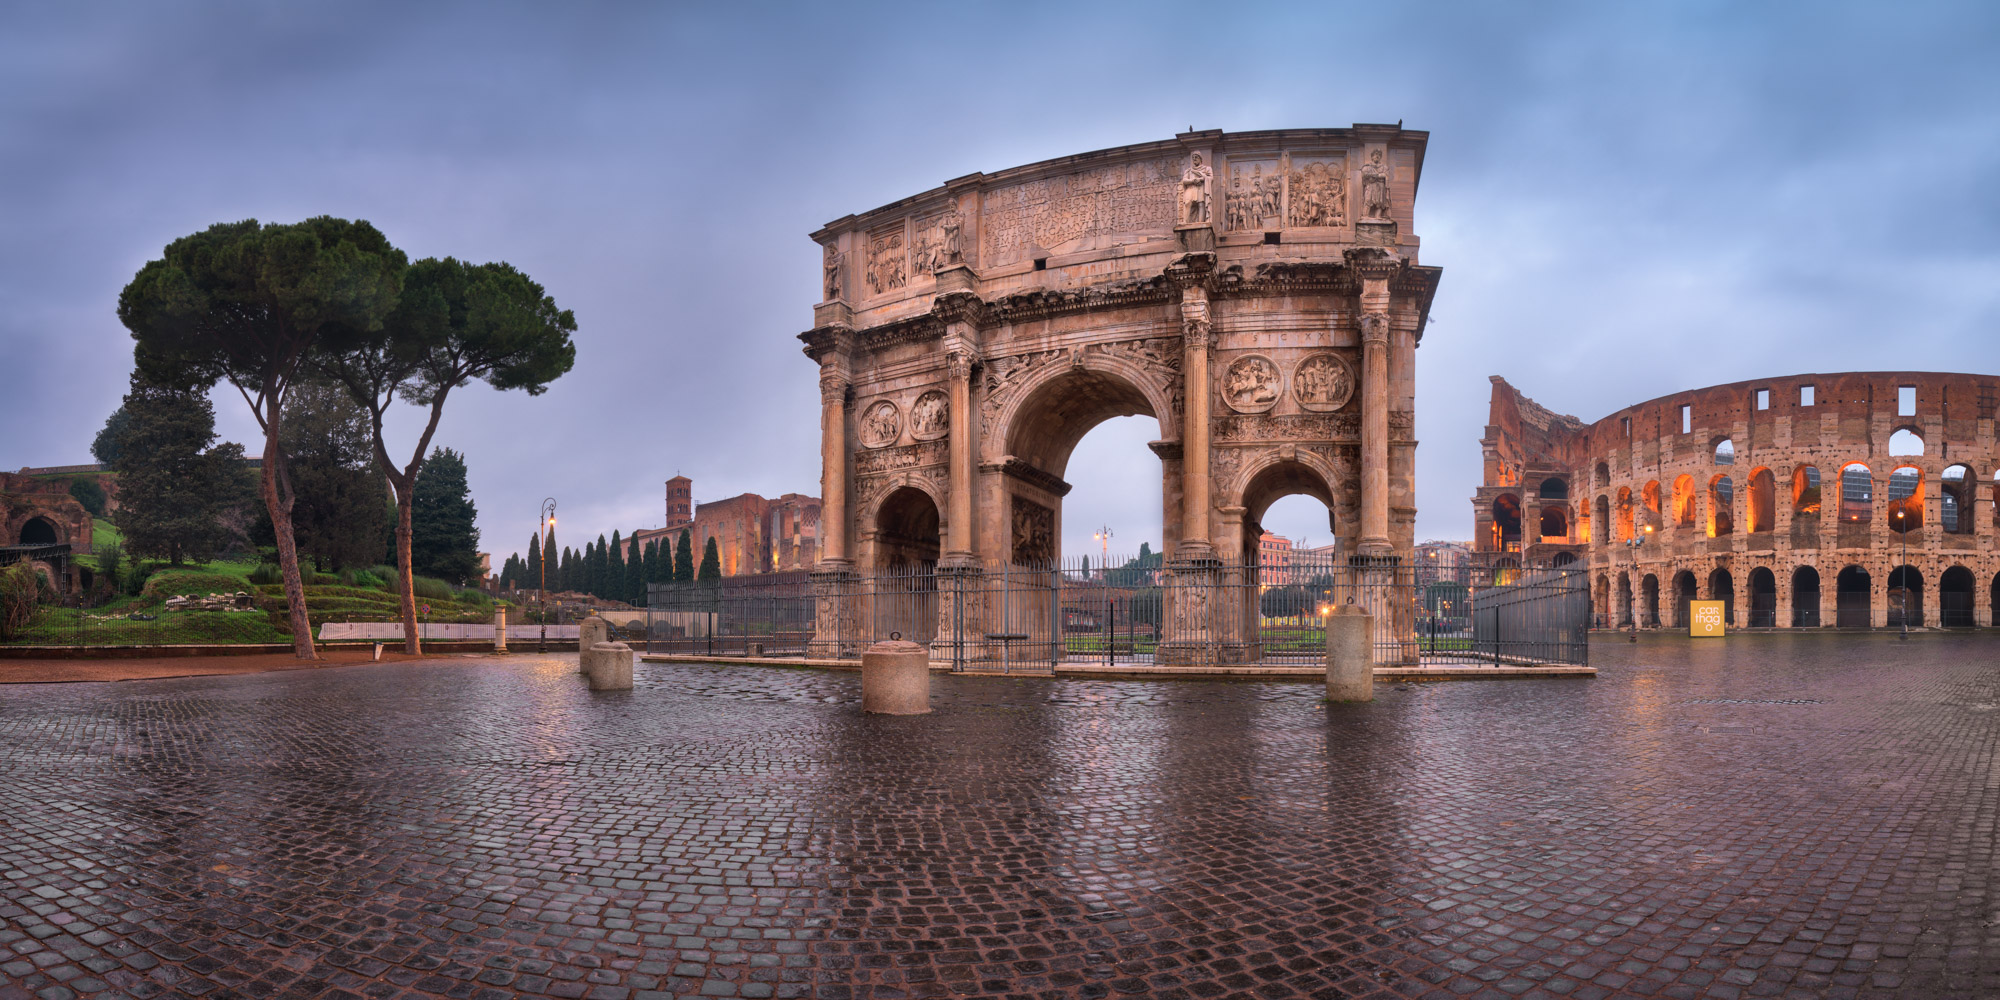 Arch of Constantine and Colosseum, Rome, Italy